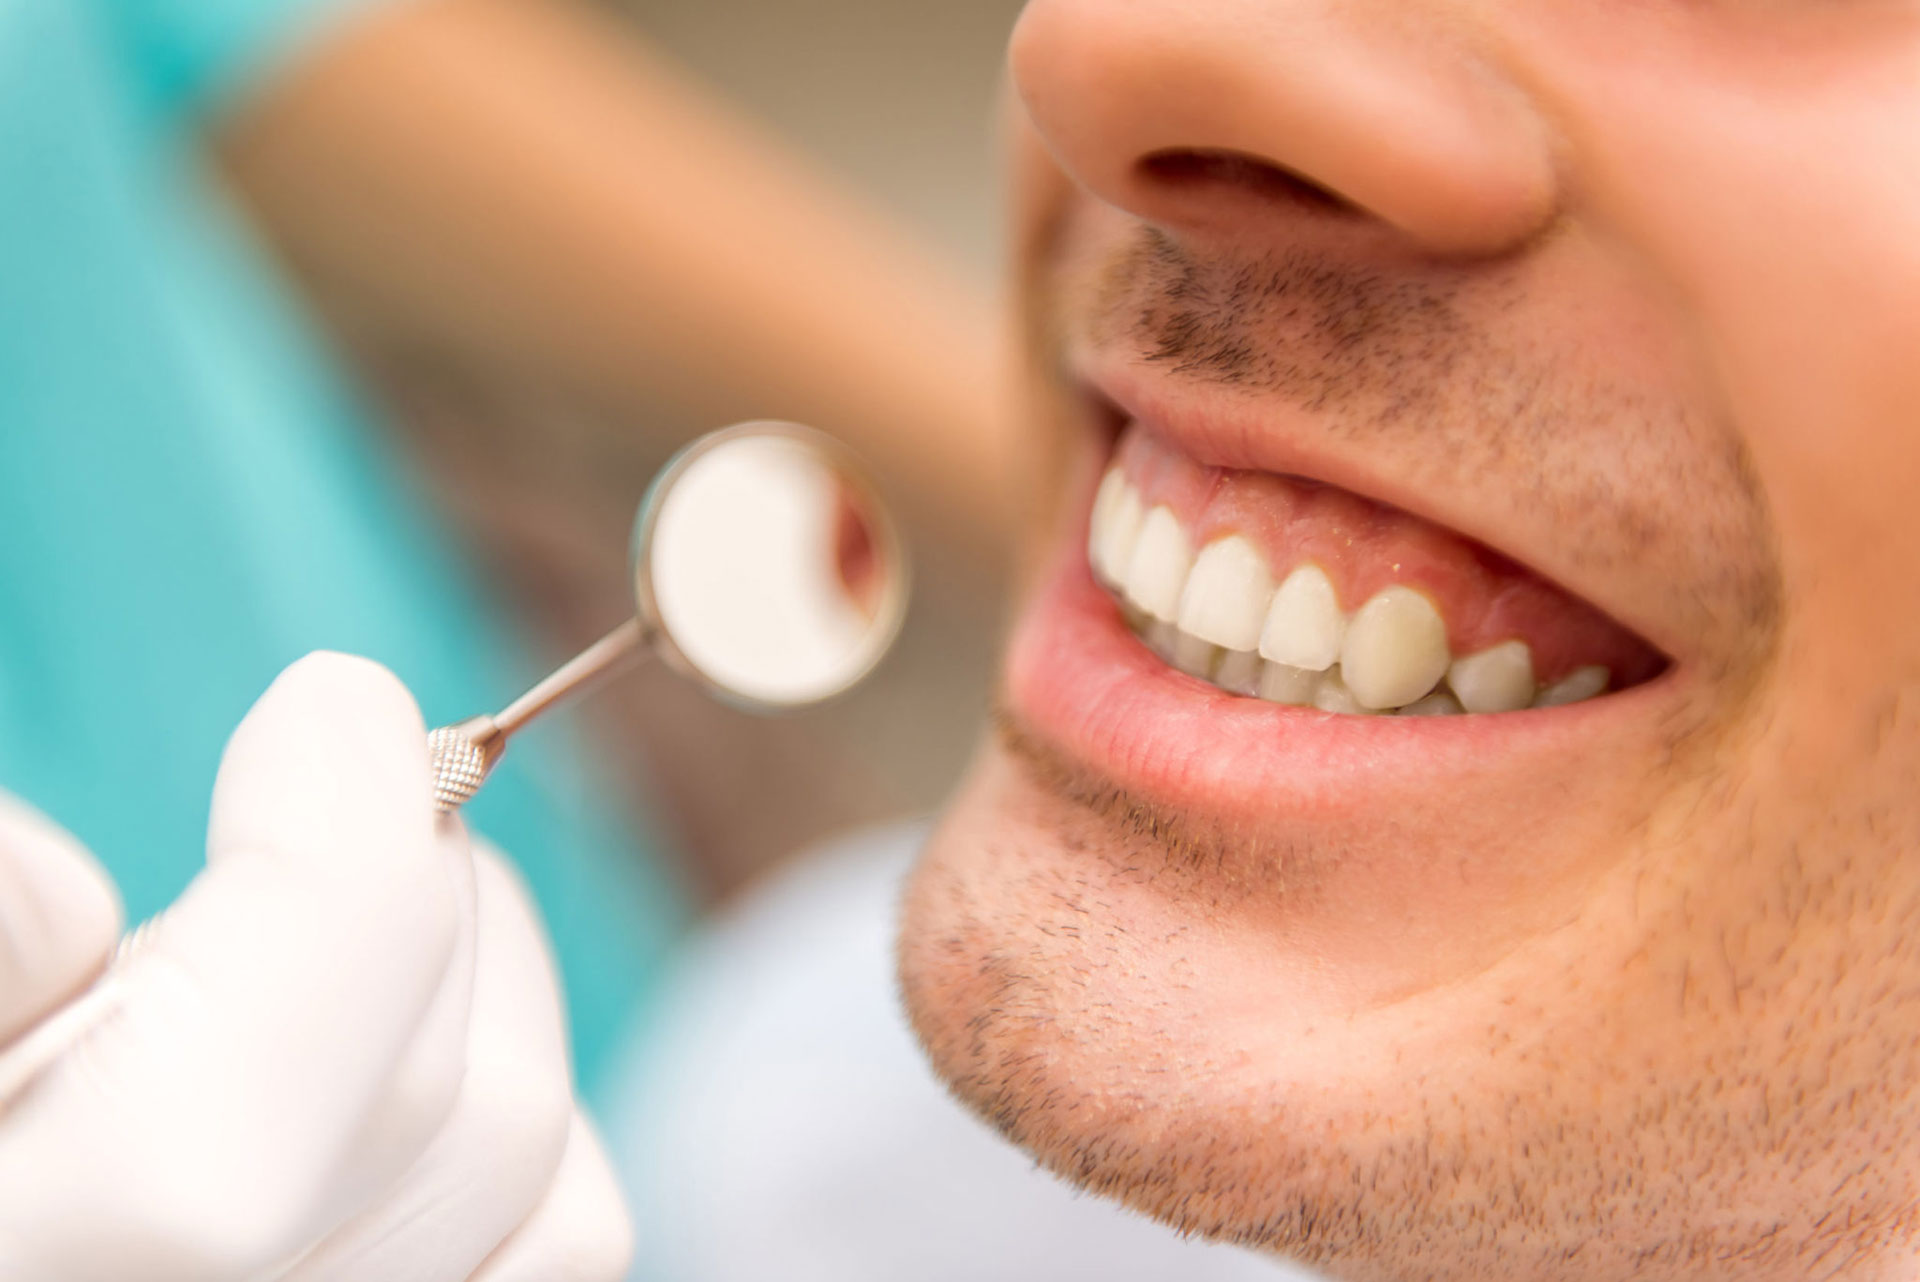 HOW DO I KNOW IF I'M AT RISK FOR ORAL CANCER?